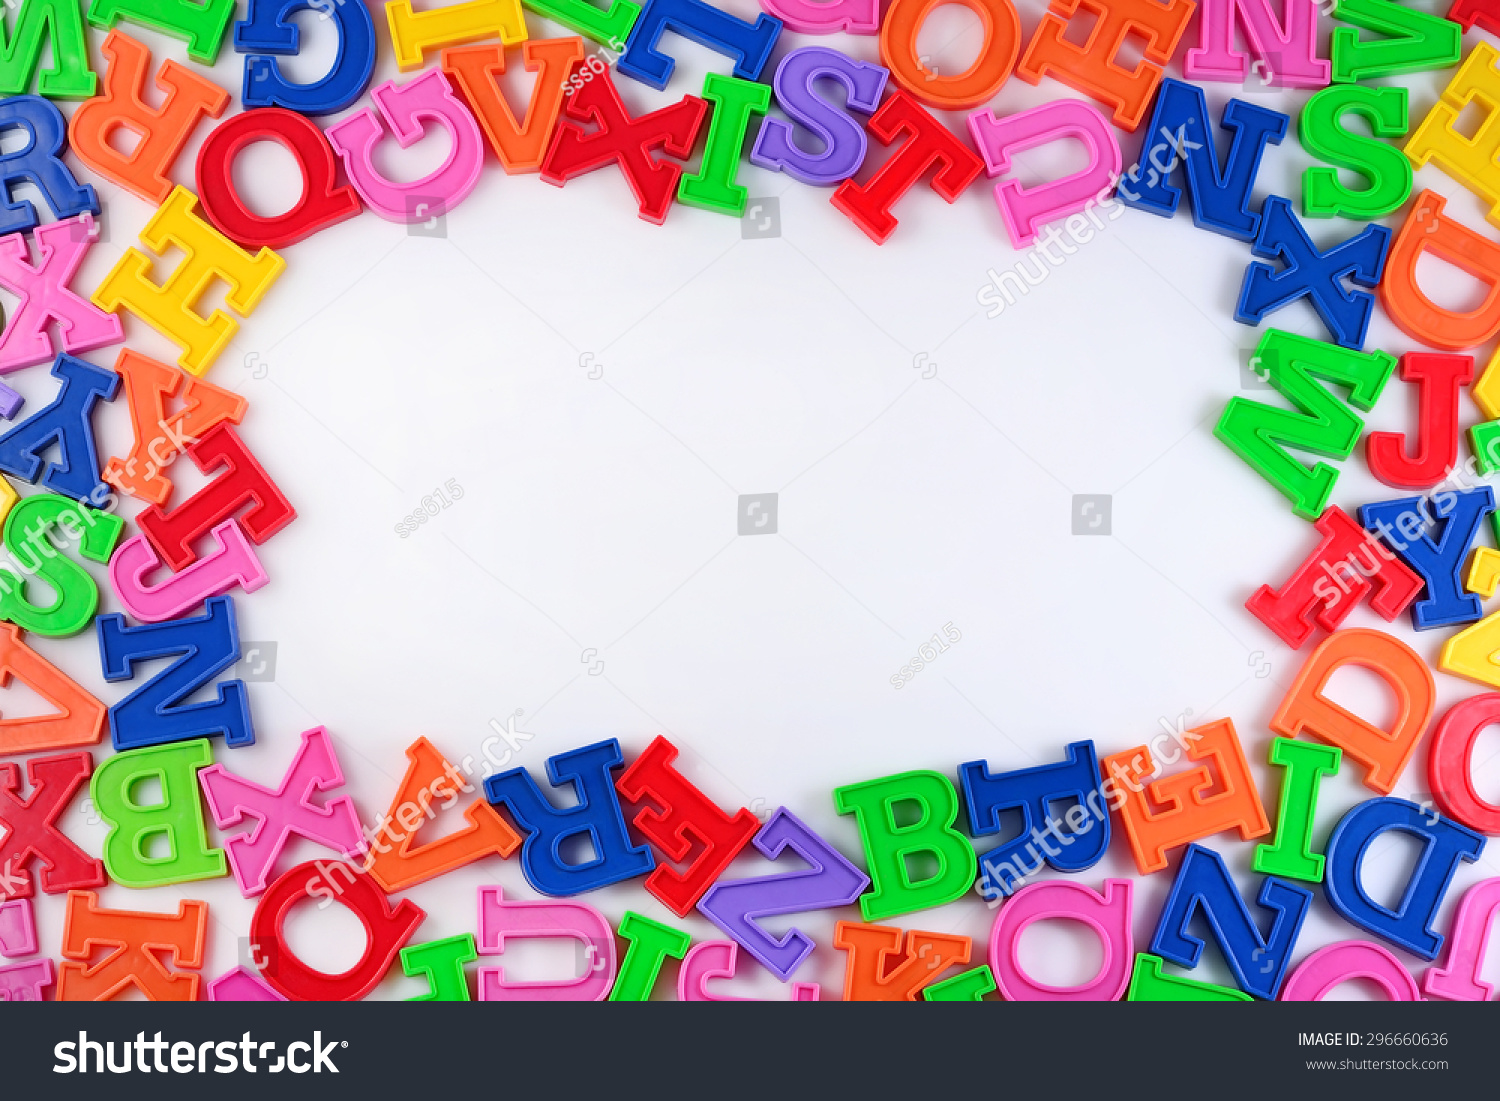 Frame Plastic Colorful Alphabet Letters On Stock Photo (Safe to Use ...